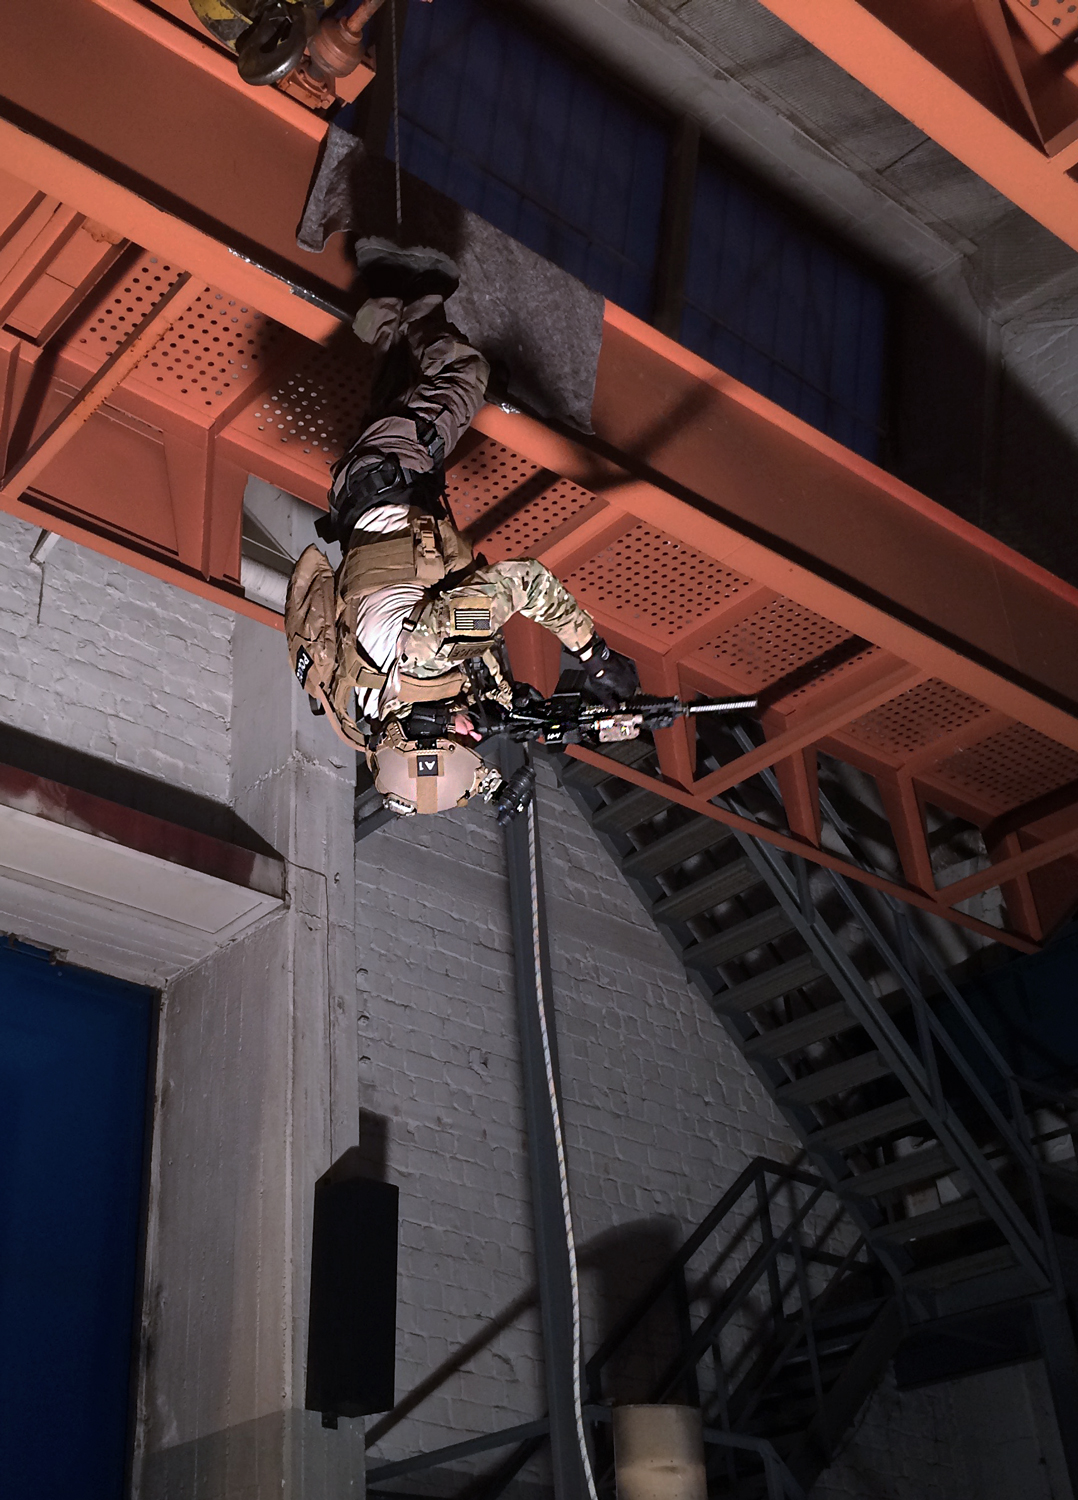 MG Action, Martin Goeres, tactical Rappeling with ballistic Helmet & Platecarrier, Abseilen, headfirst